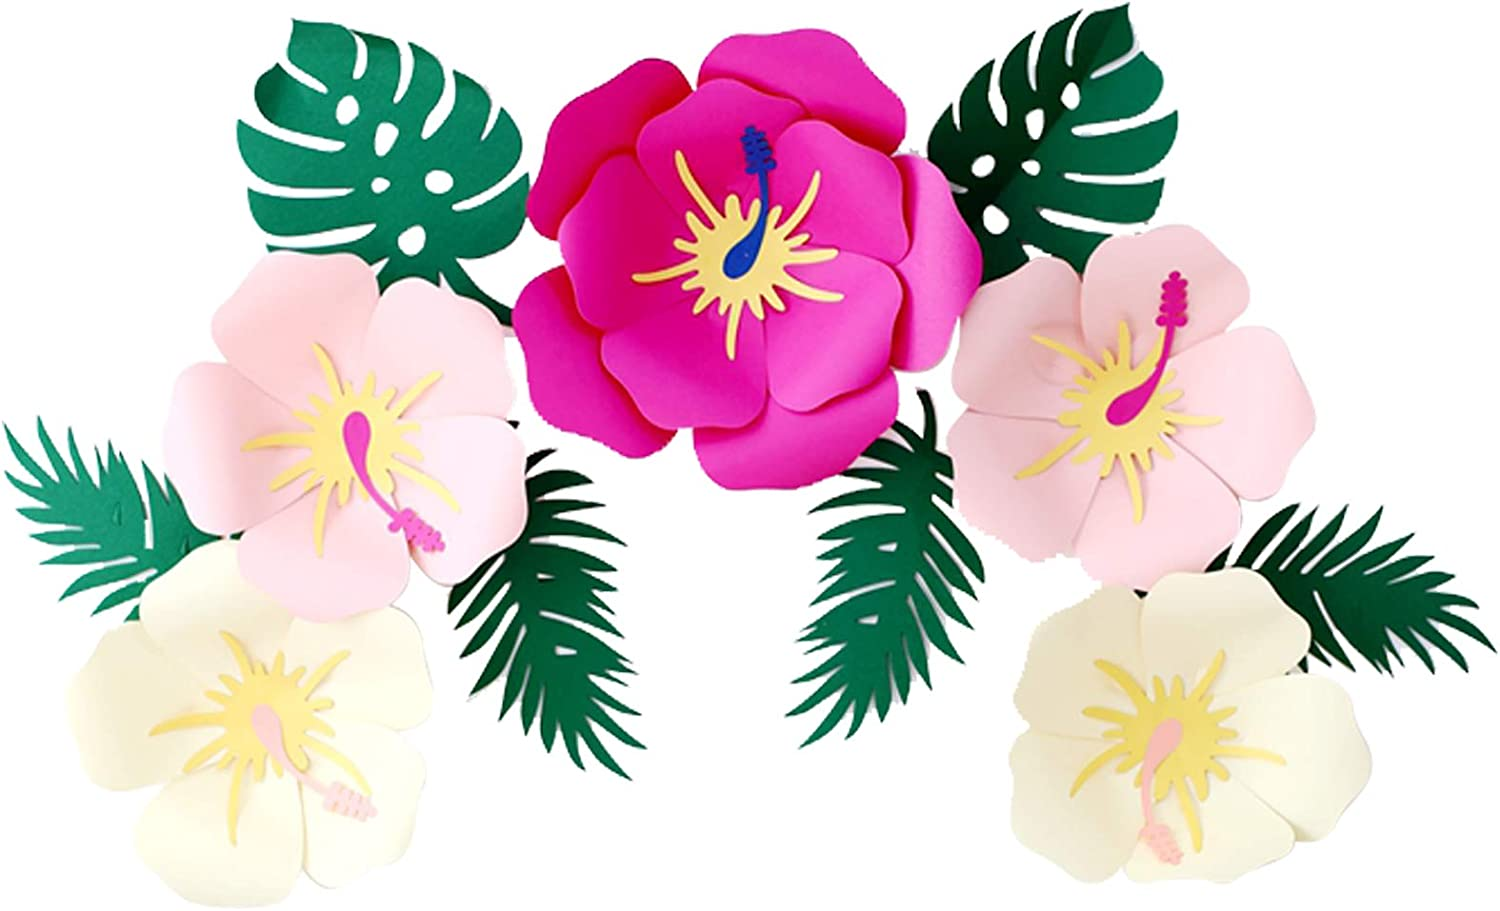 Luau Hawaiian Hibiscus Paper Flowers Tropical Leaves Party Decorations Paper Artificial Flower for Mexican Moana Hawaiian Party Decoration Aloha Tiki Party Backdrop Wall Decor Photo Props